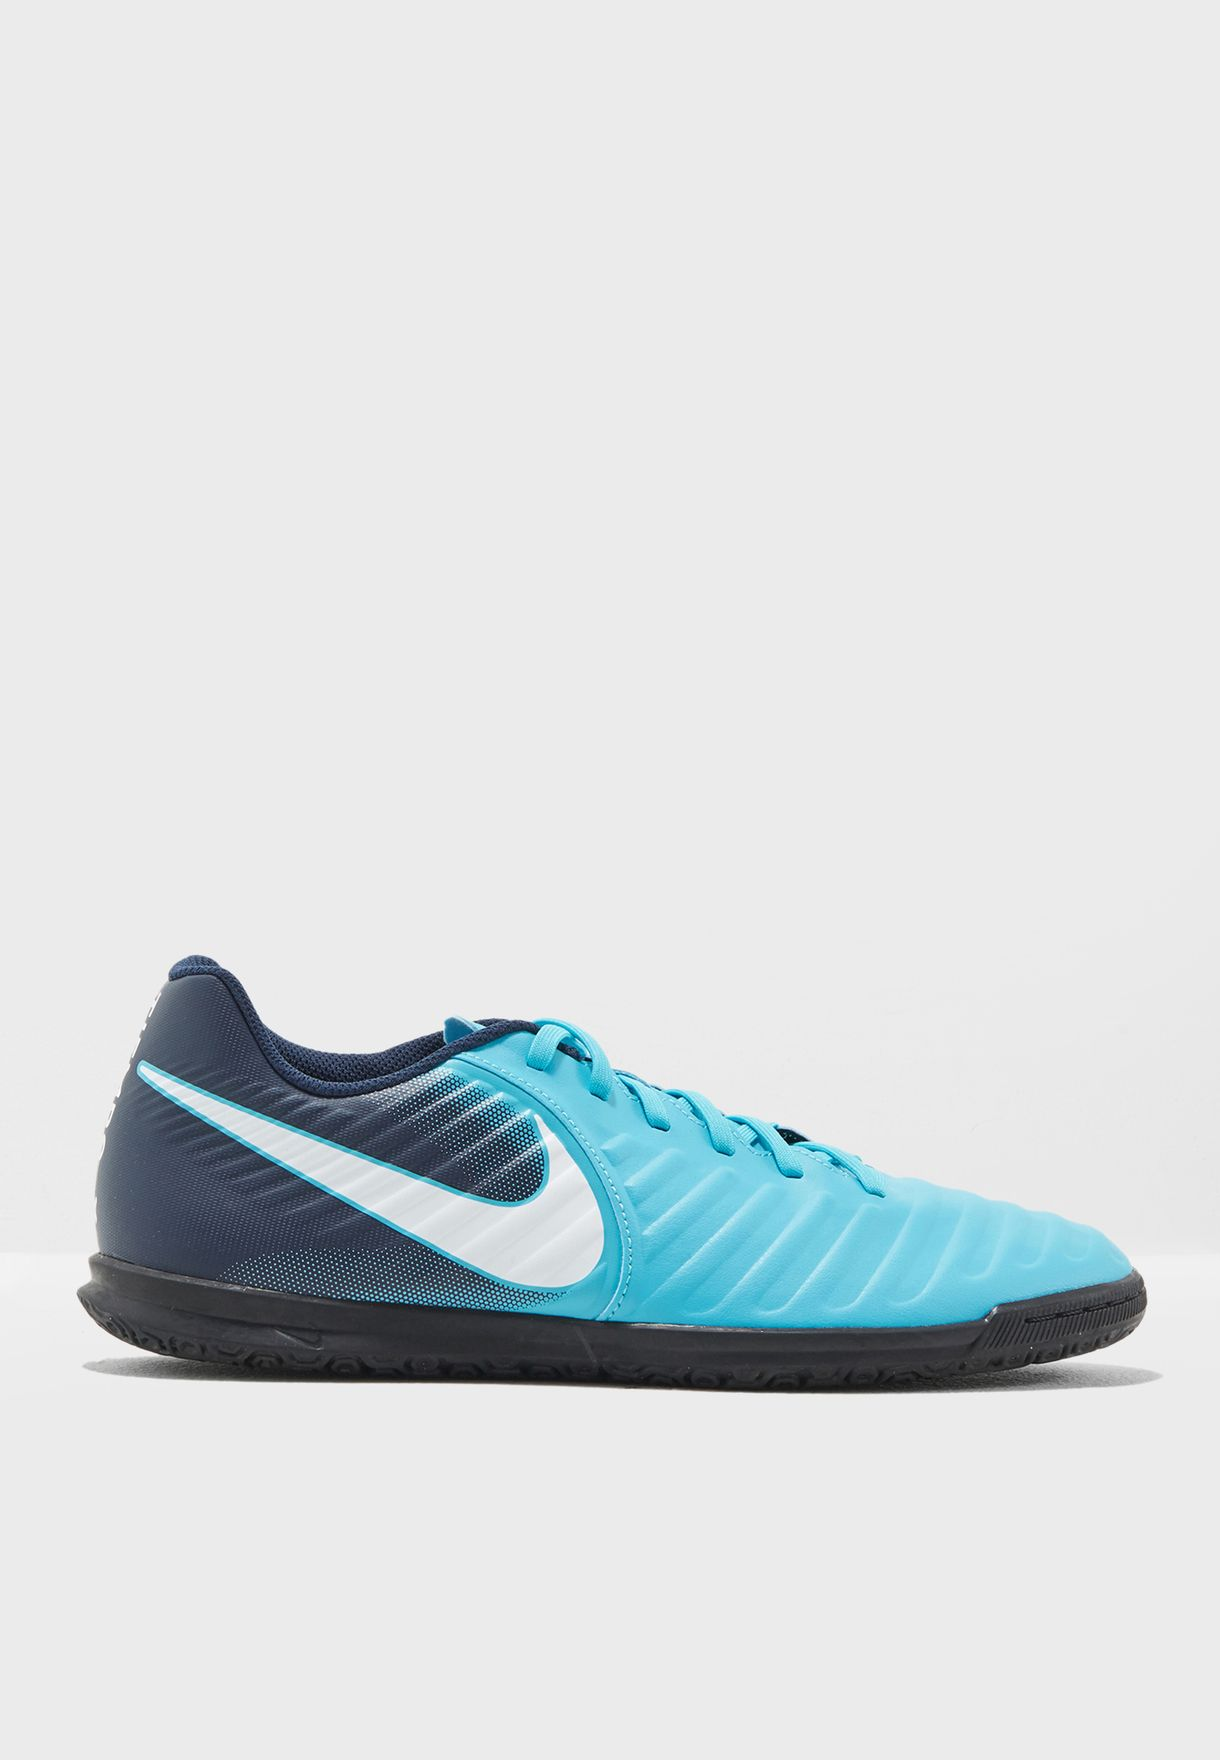 de ultramar revelación patrocinado  Buy Nike blue Tiempox Rio IV IC for Men in MENA, Worldwide | 897769-414